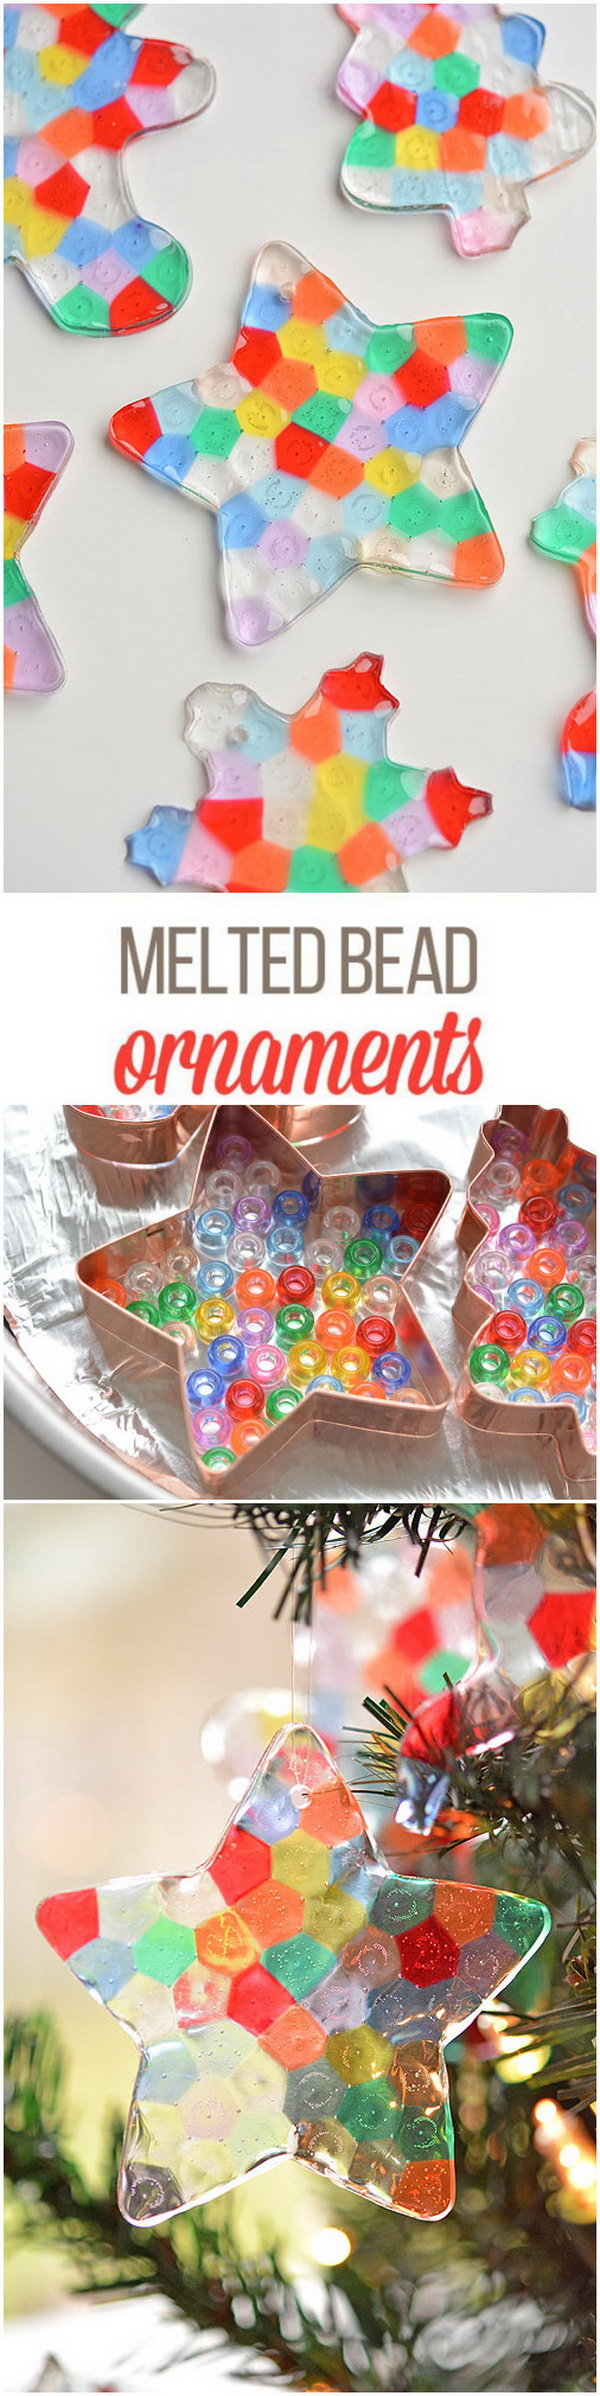 Melted Bead Ornaments. Create these colorful and beautiful melted bead ornaments to hang on the Christmas tree!